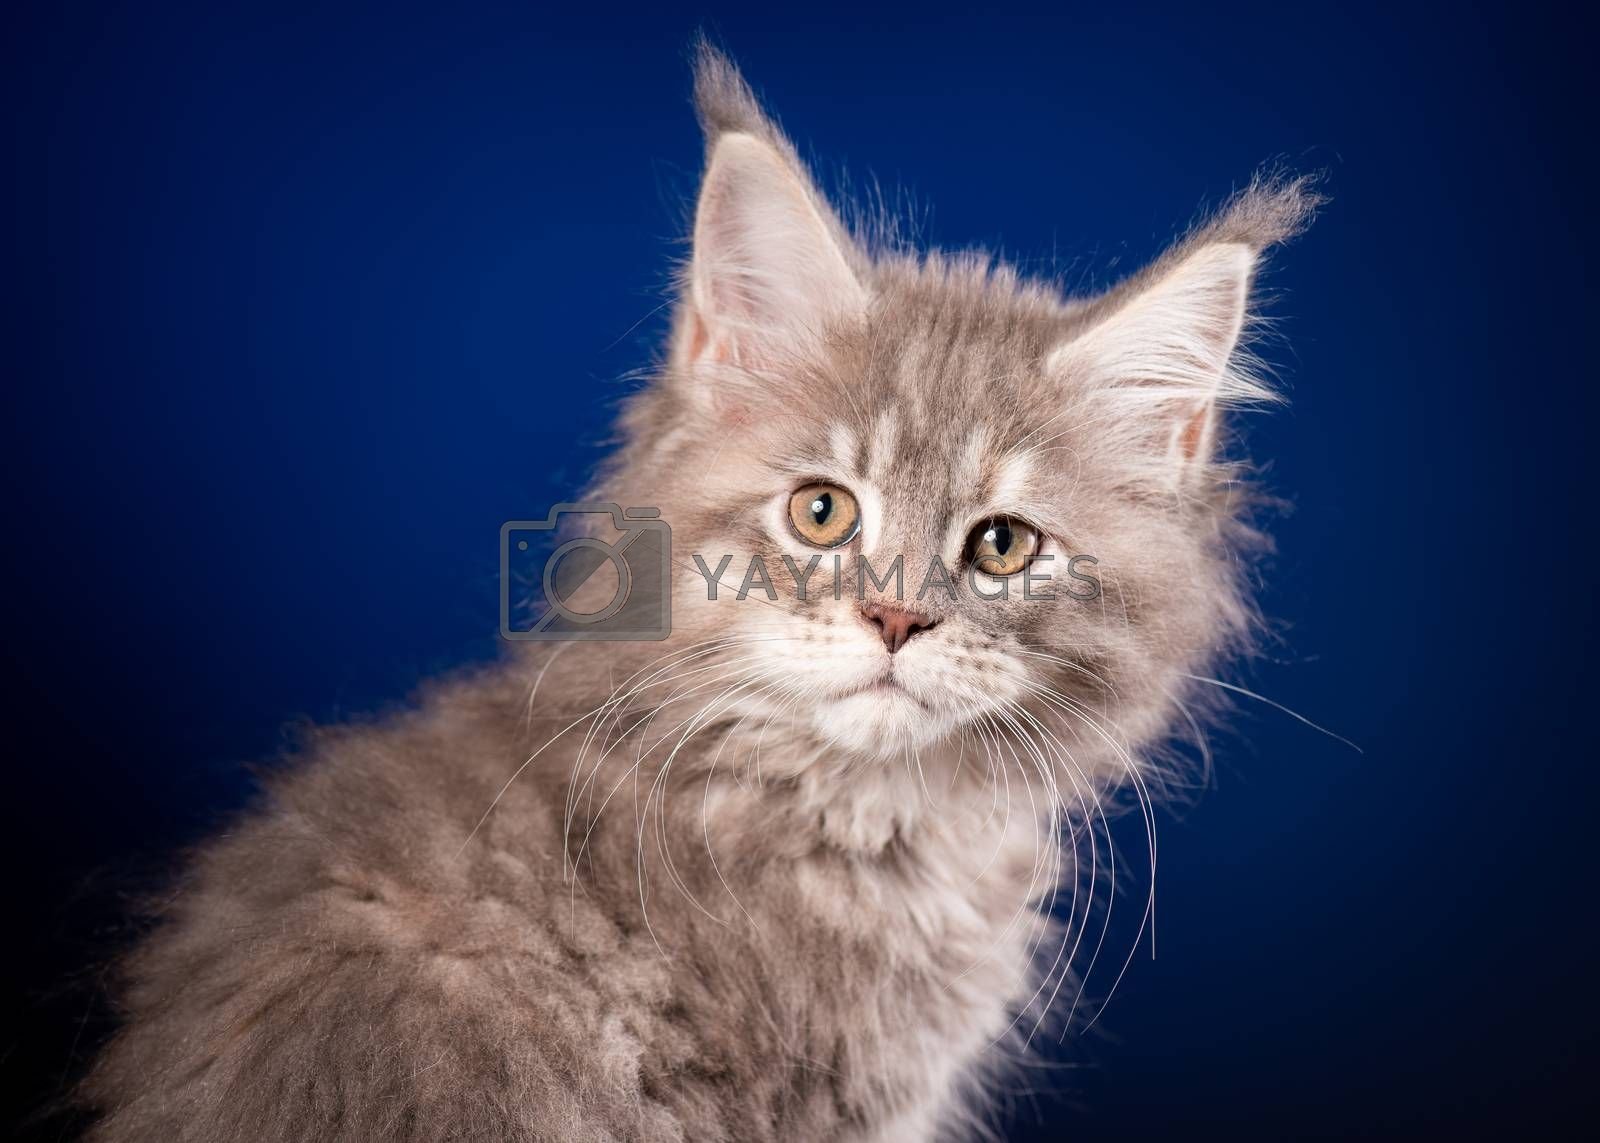 Funny Maine Coon kitten 2 months old looking at camera. Close-up studio photo of gray little cat on blue background. Portrait of beautiful domestic kitty.